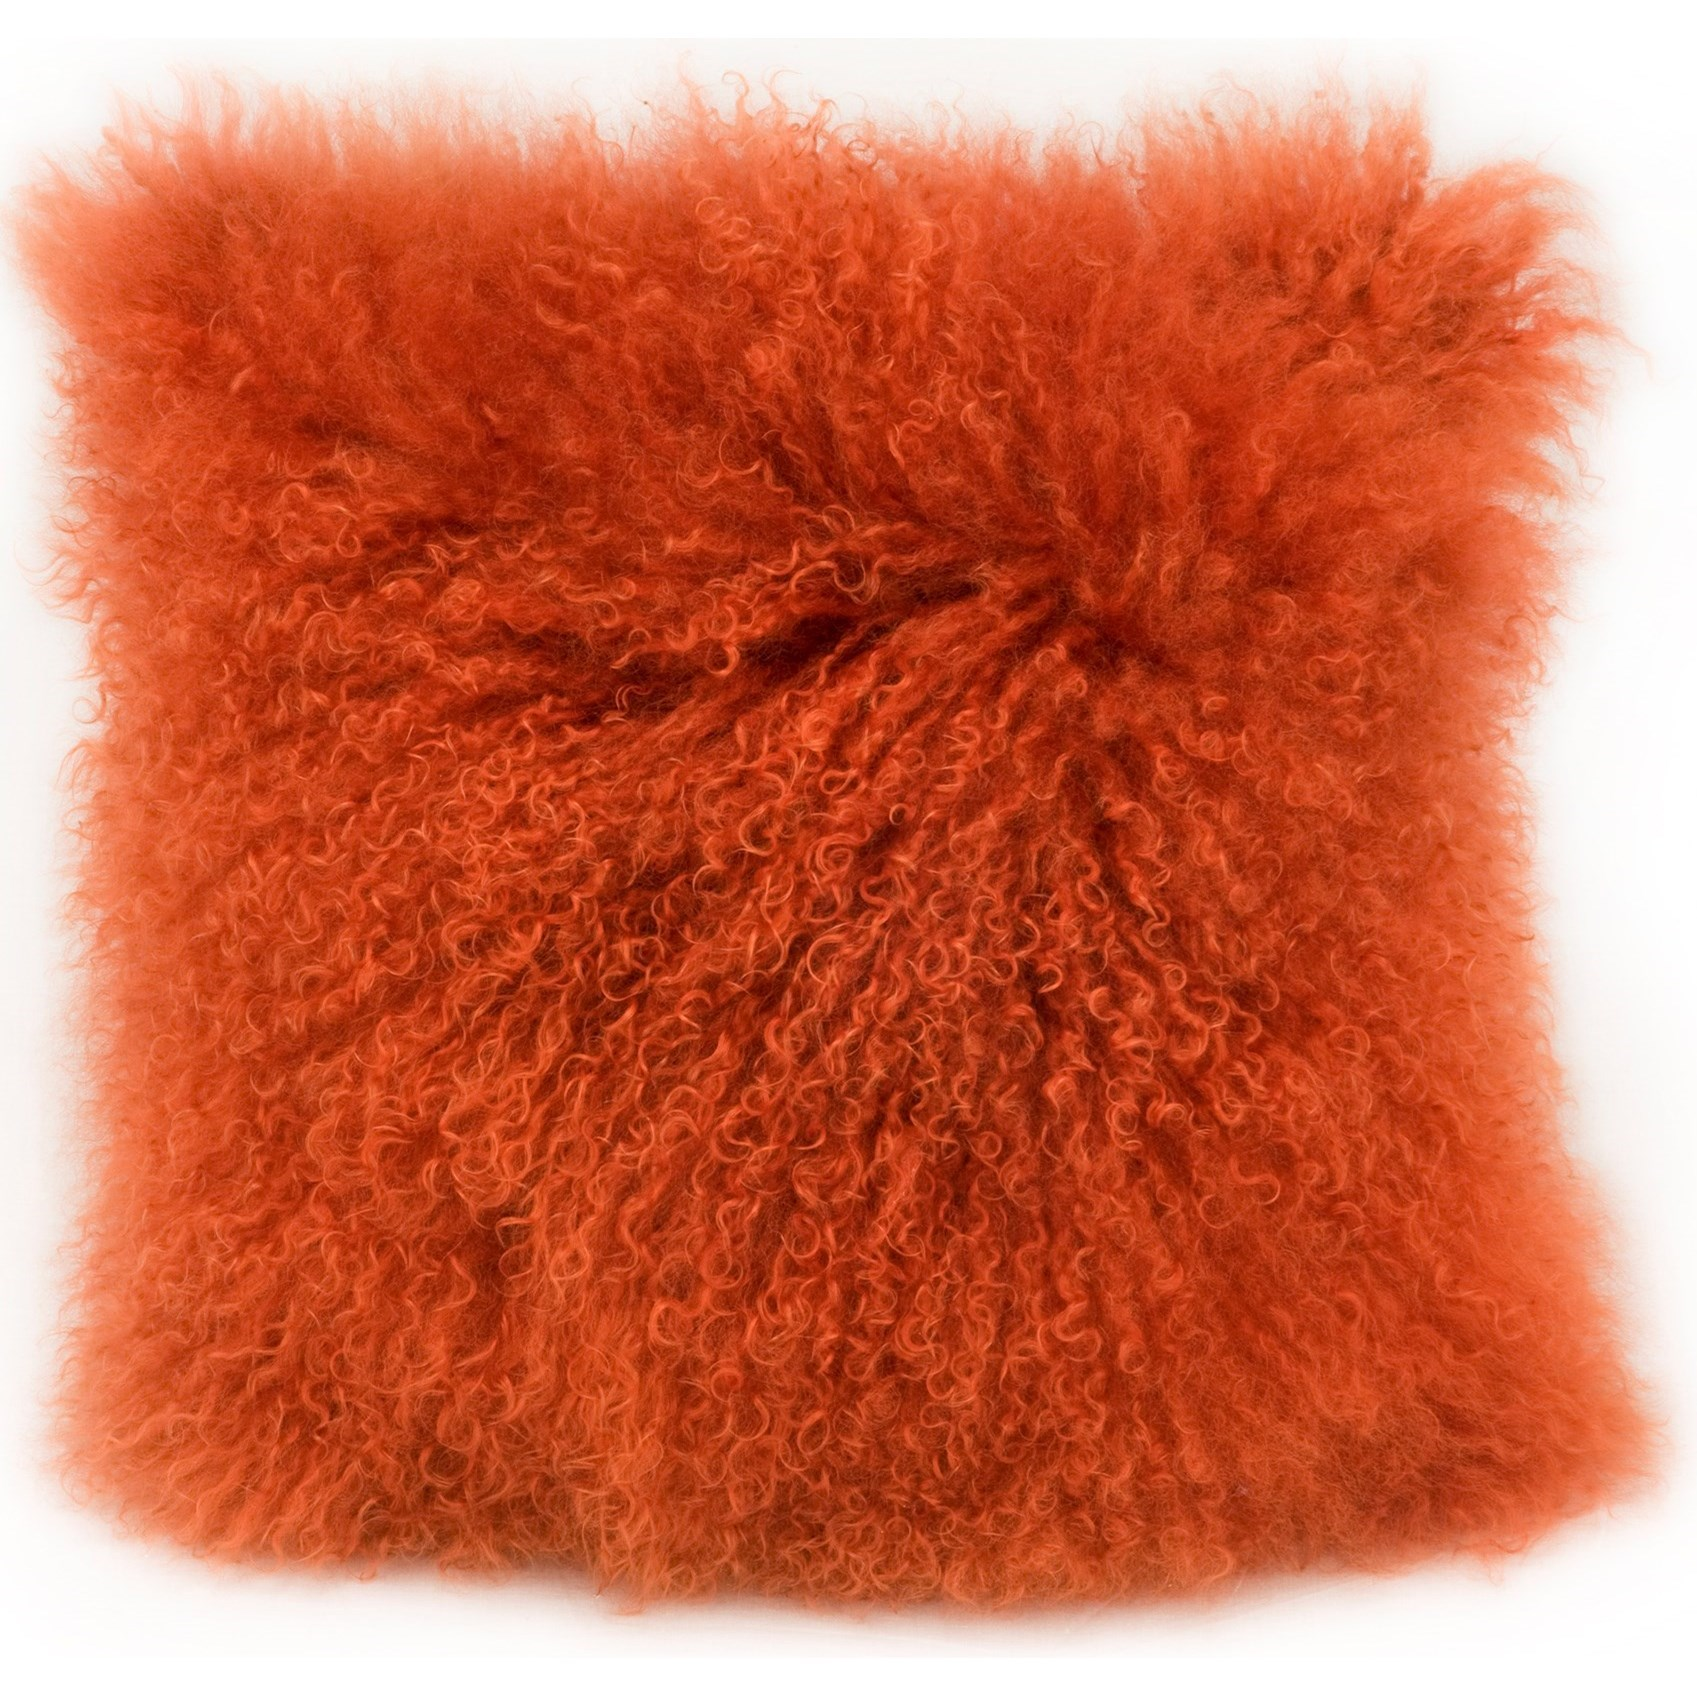 Pillows and Throws Lamb Fur Pillow Orange by Moe's Home Collection at Stoney Creek Furniture